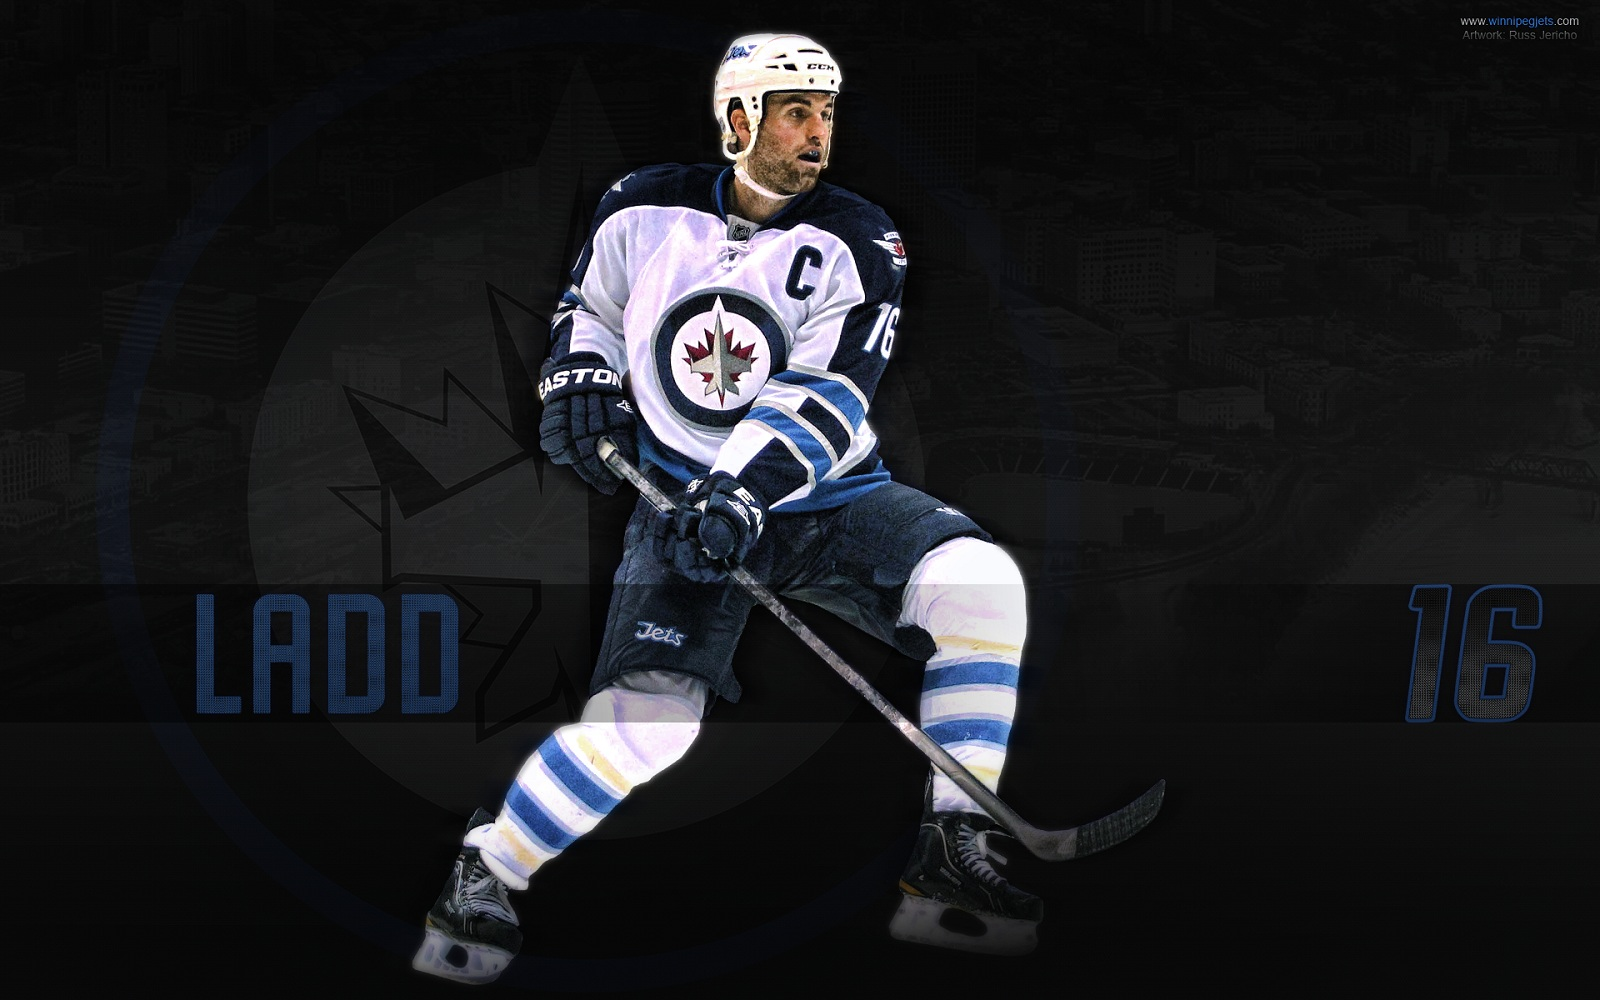 Andrew Ladd Winnipeg Jets Wallpaper 16001000 183010 HD Wallpaper 1600x1000